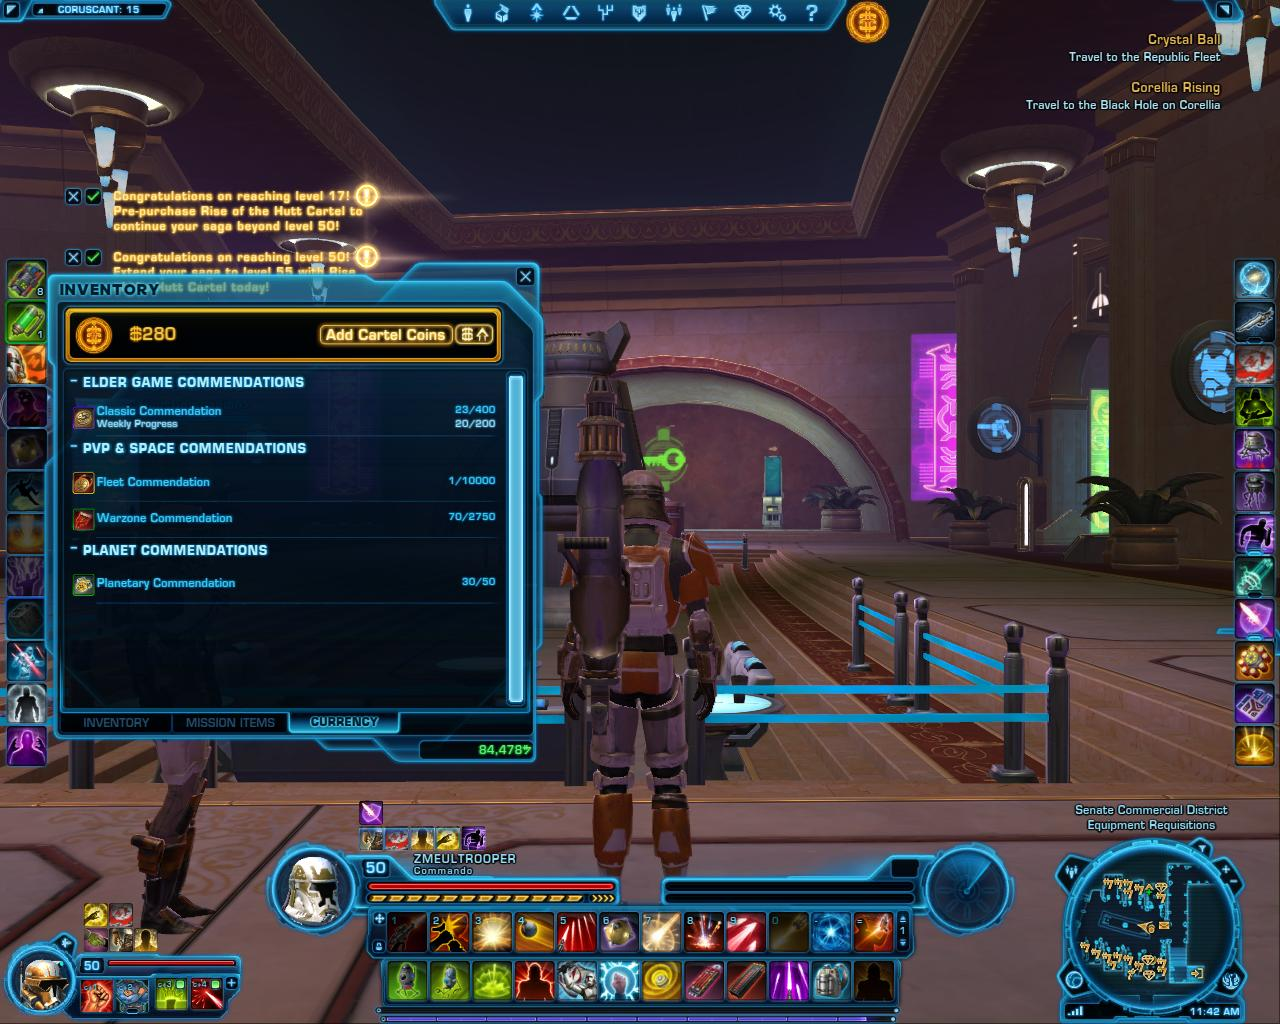 black hole commendations swtor - photo #21